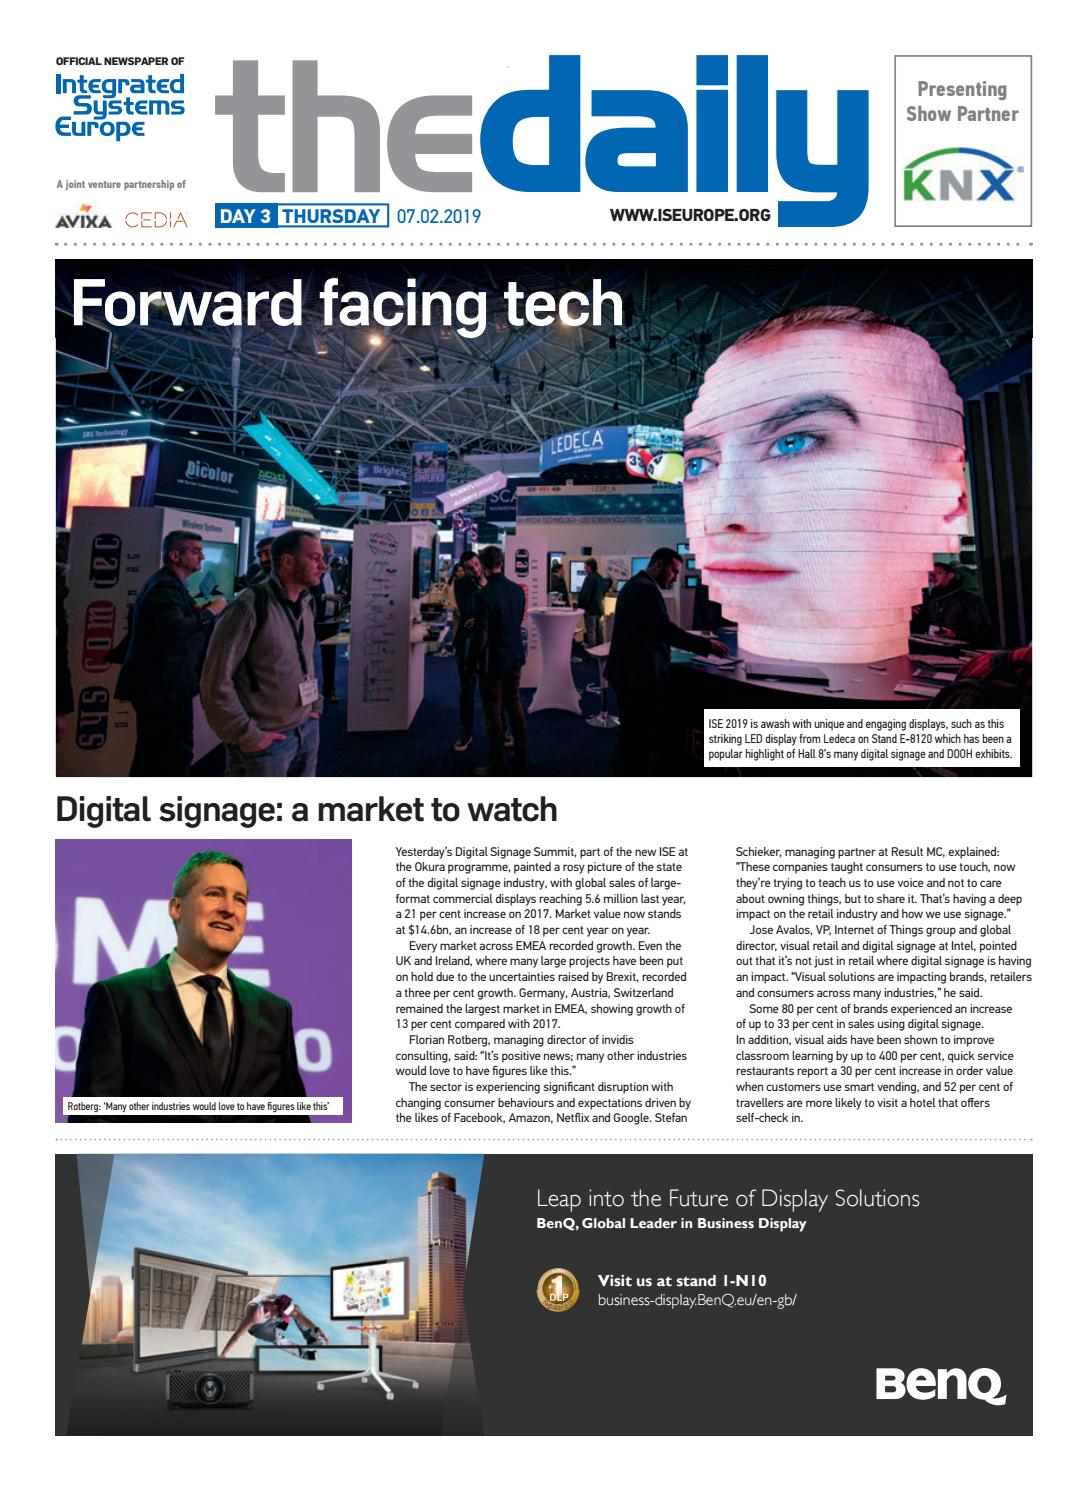 Ise Daily Thursday 07 February 2019 By Future Plc Issuu Images, Photos, Reviews